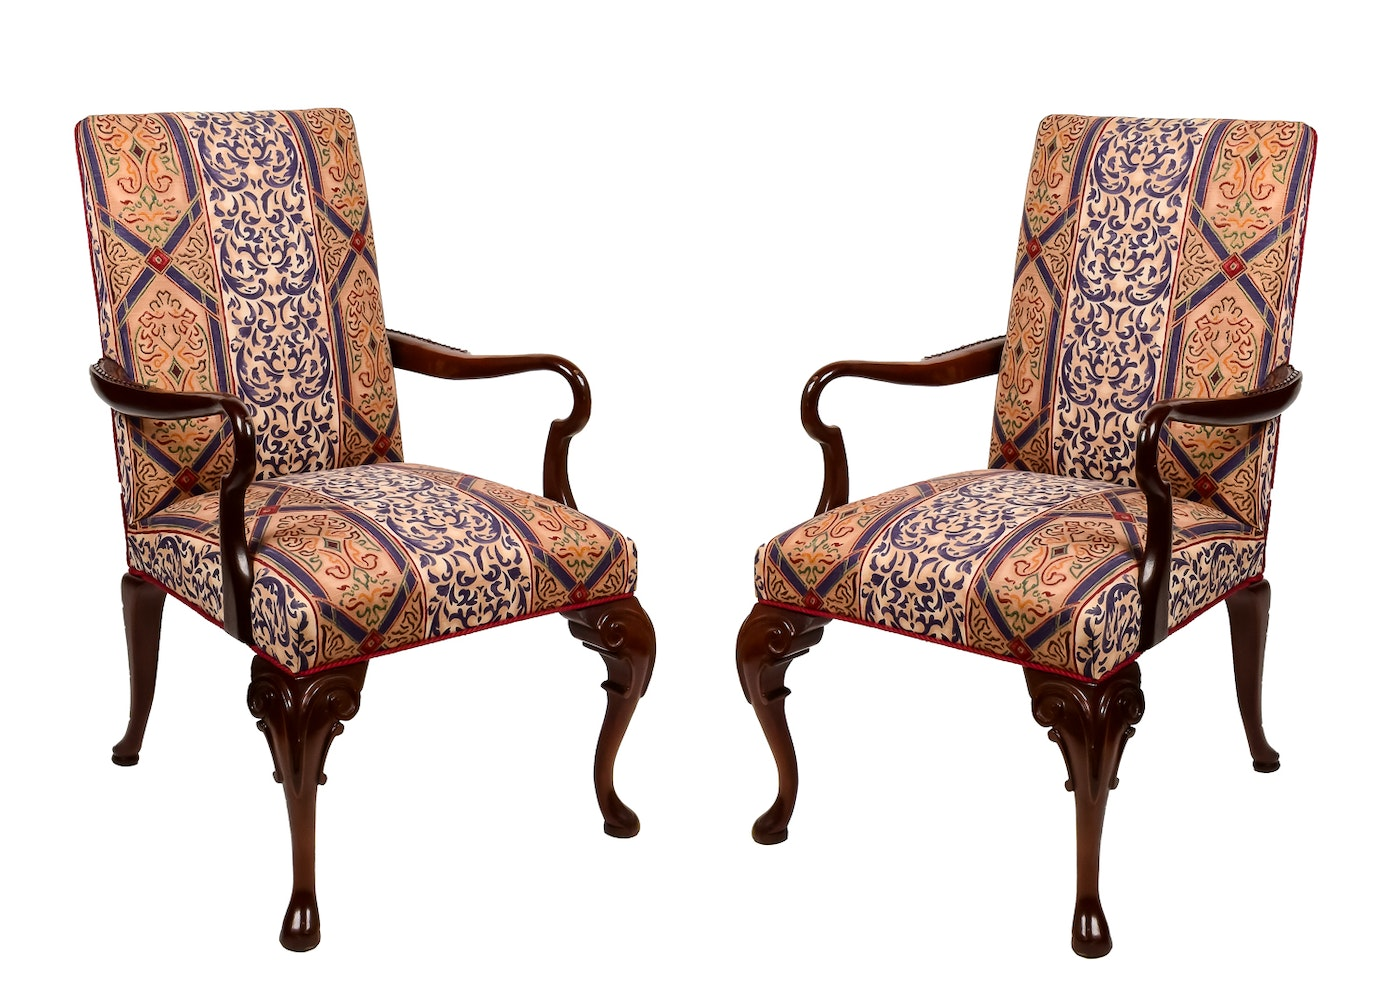 Statesville Queen Anne Style Upholstered Chairs Ebth